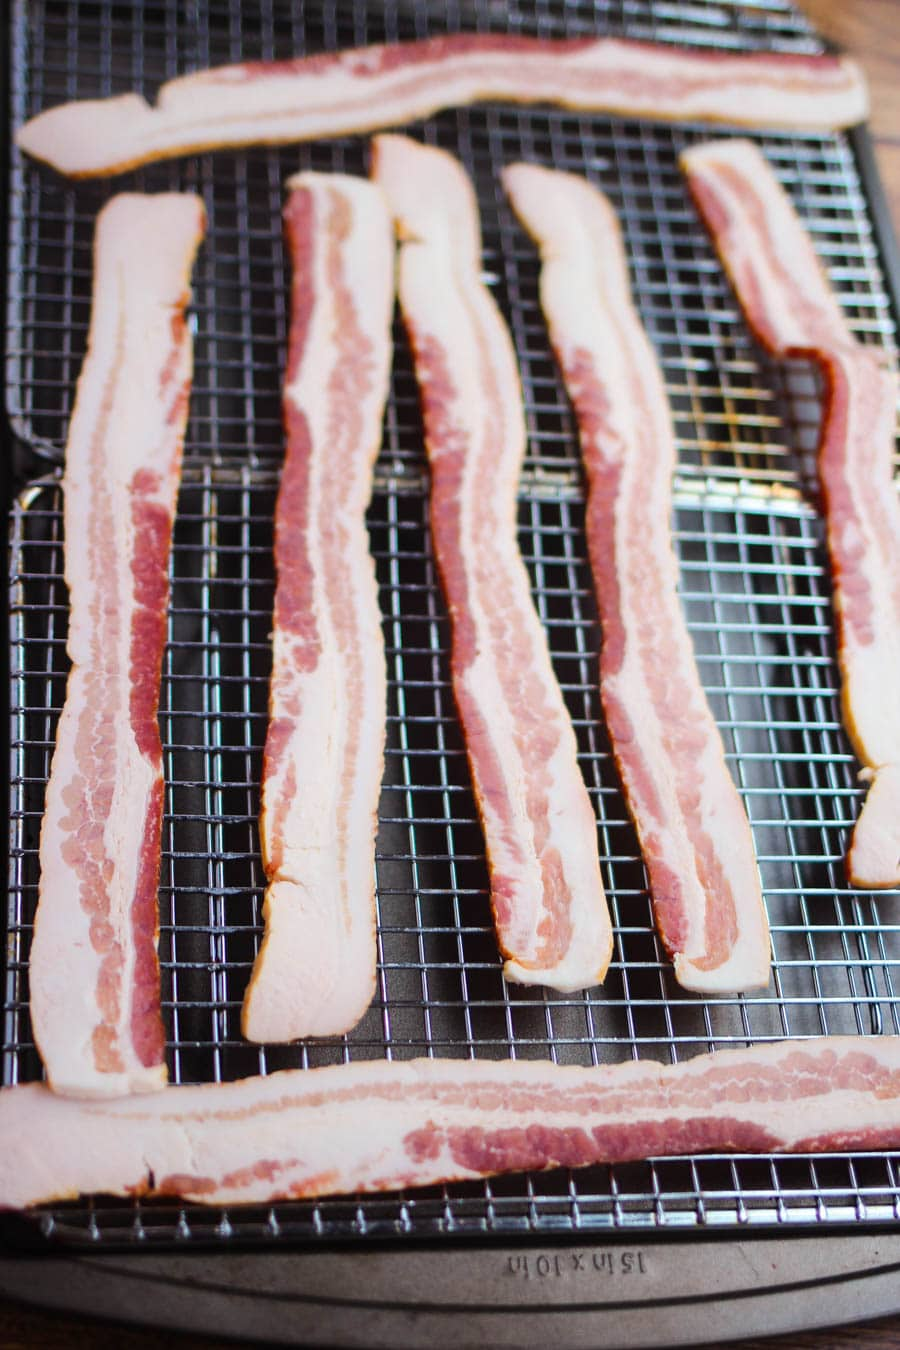 Get ready for the best and the cleanest method to cook bacon! Check out how to cook bacon in the oven and create the crispiest and tastiest bacon ever!